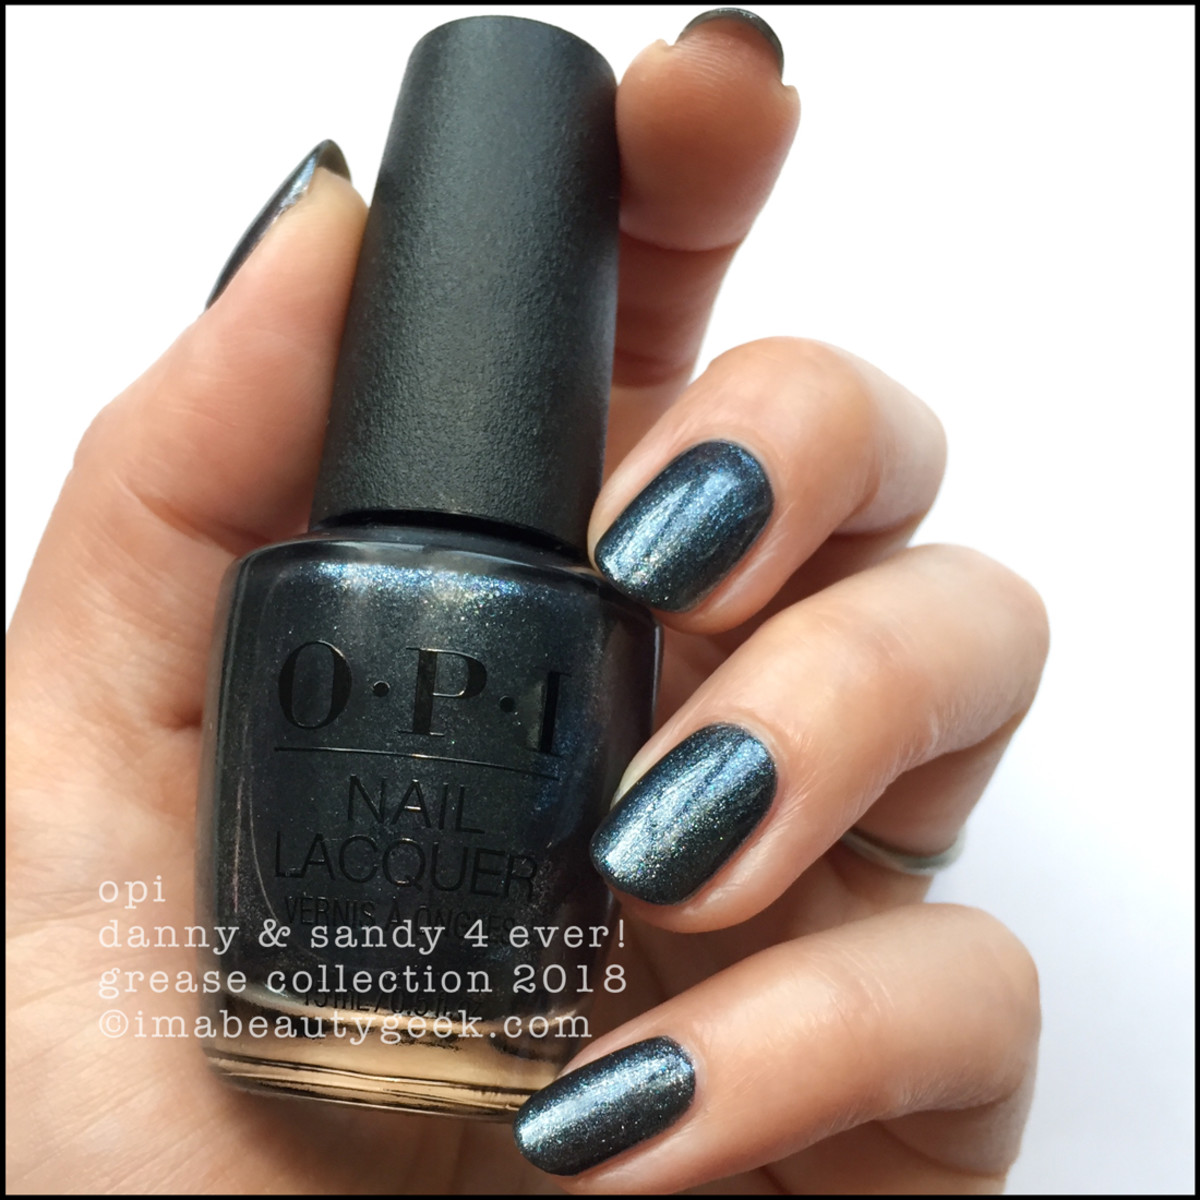 OPI Danny & Sandy 4 Ever! - OPI Grease 2018